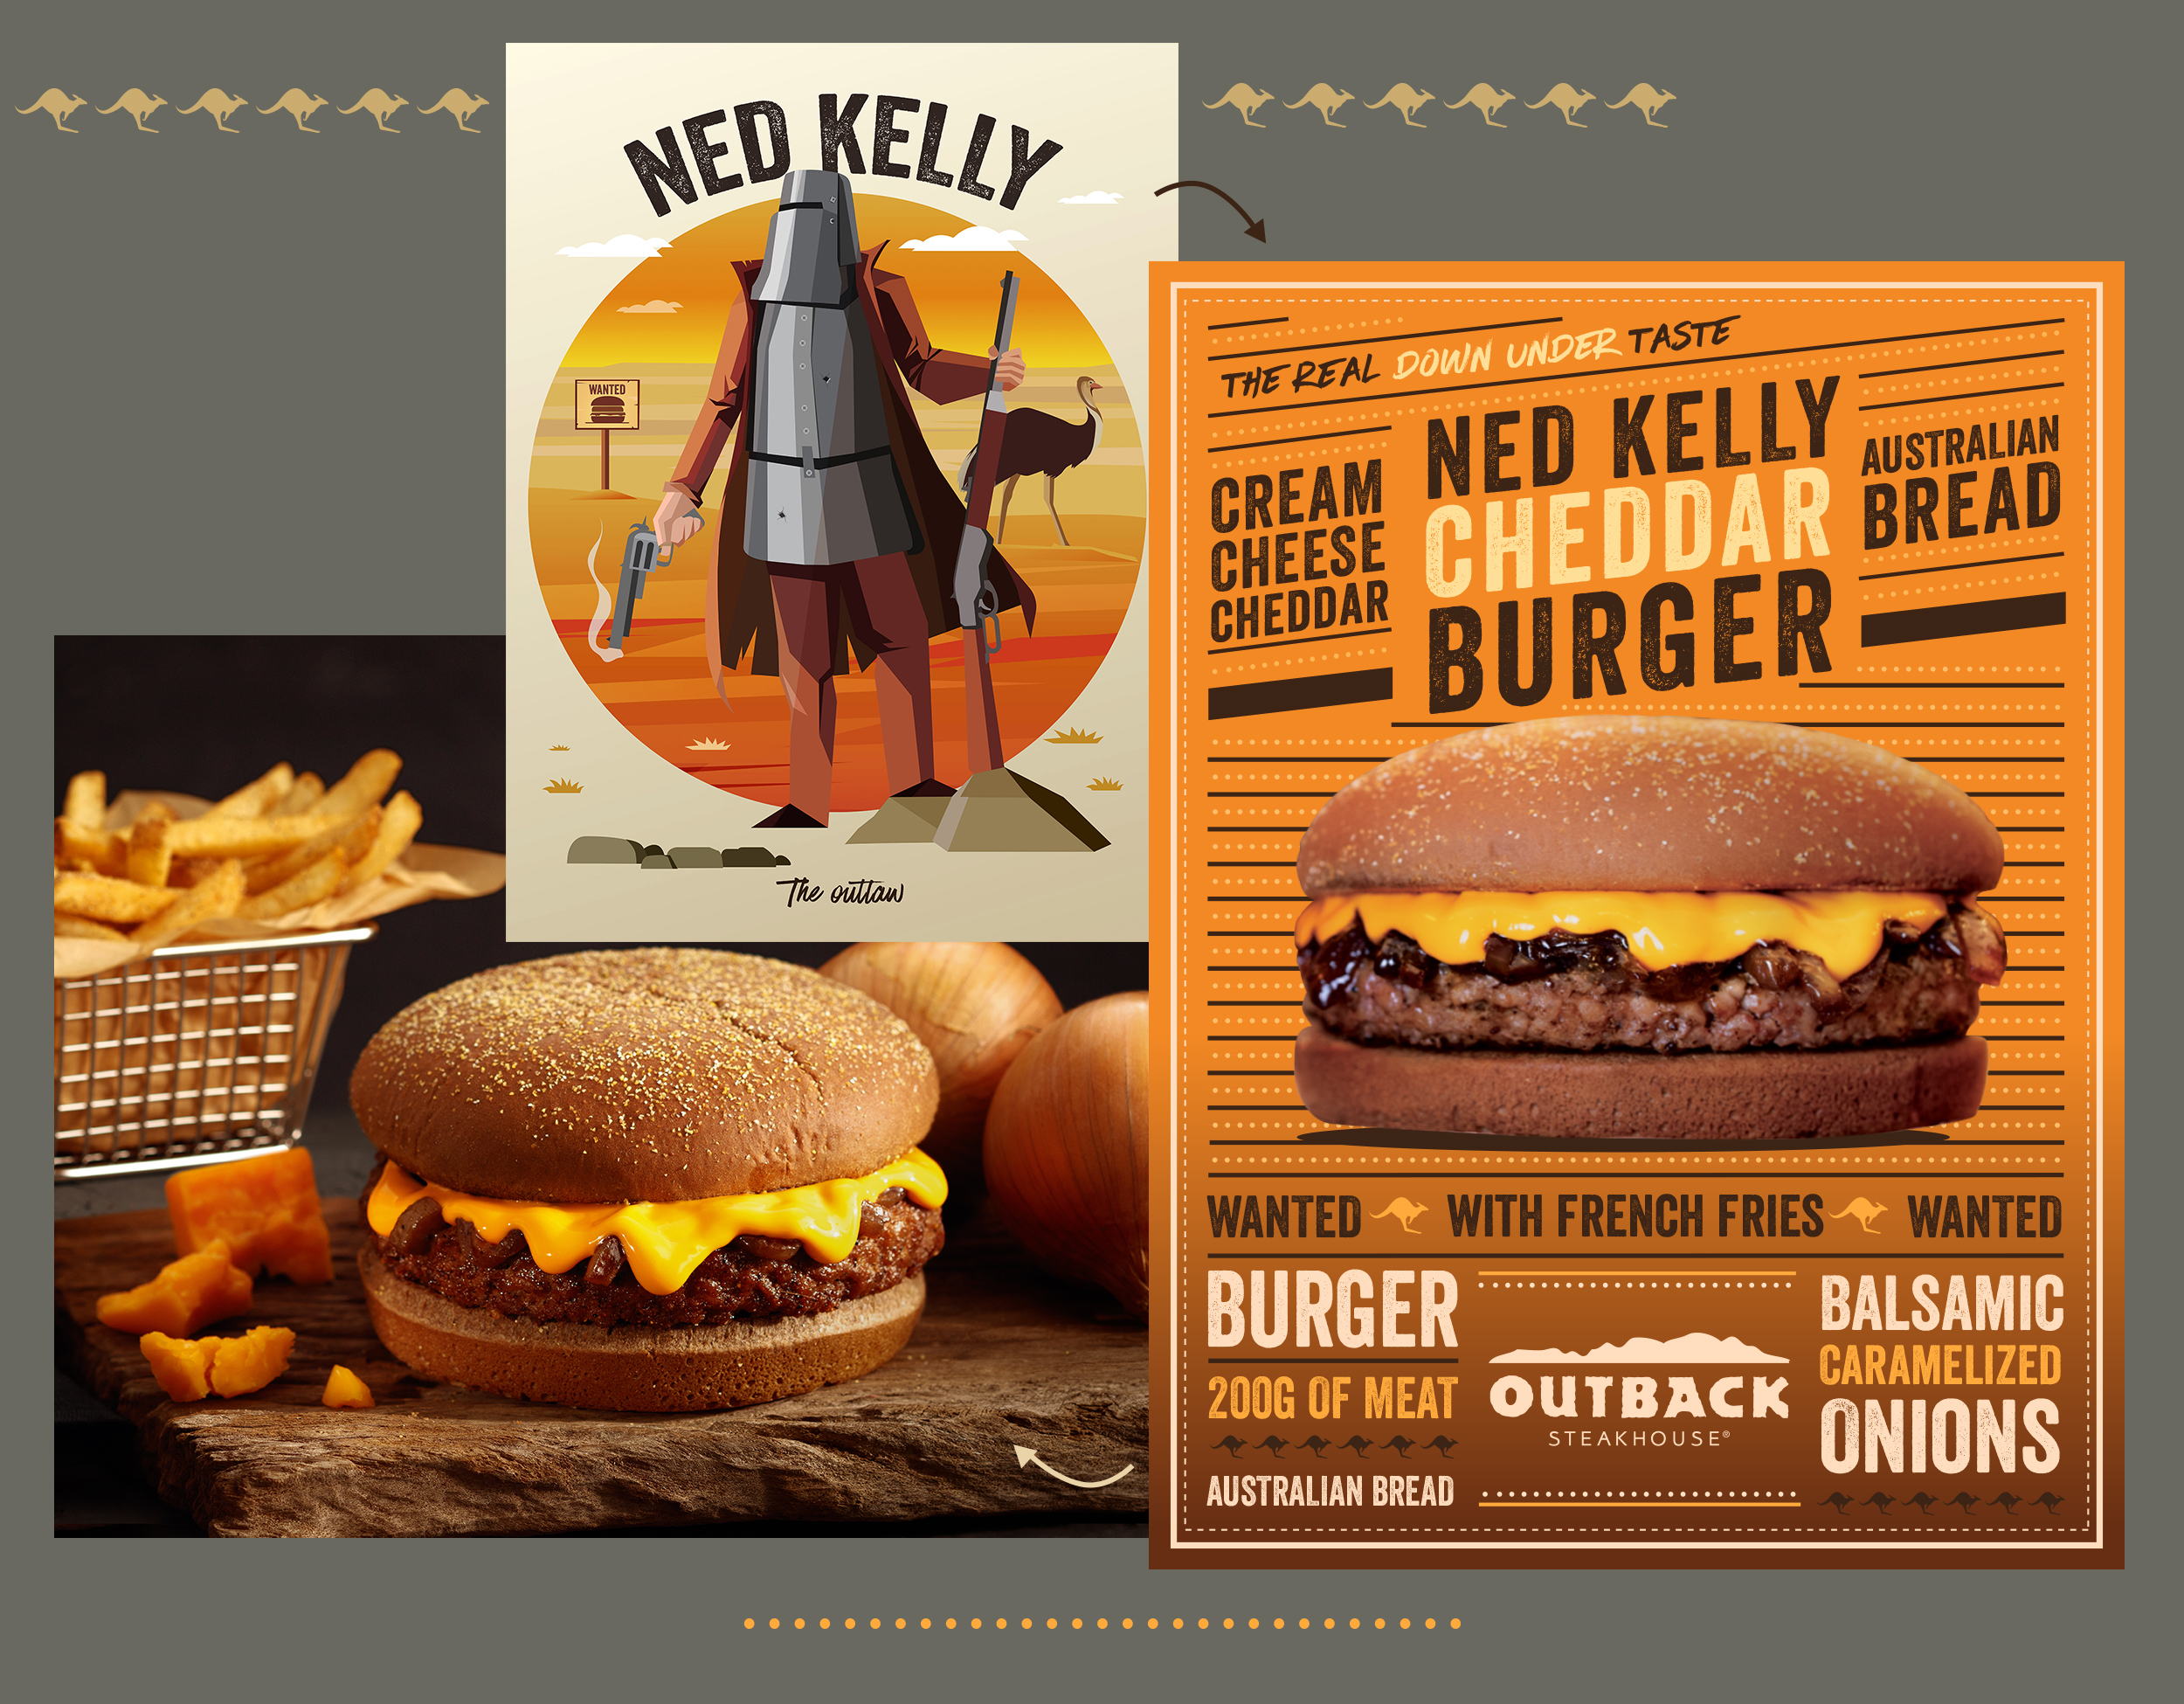 Ned Kelly Burguer